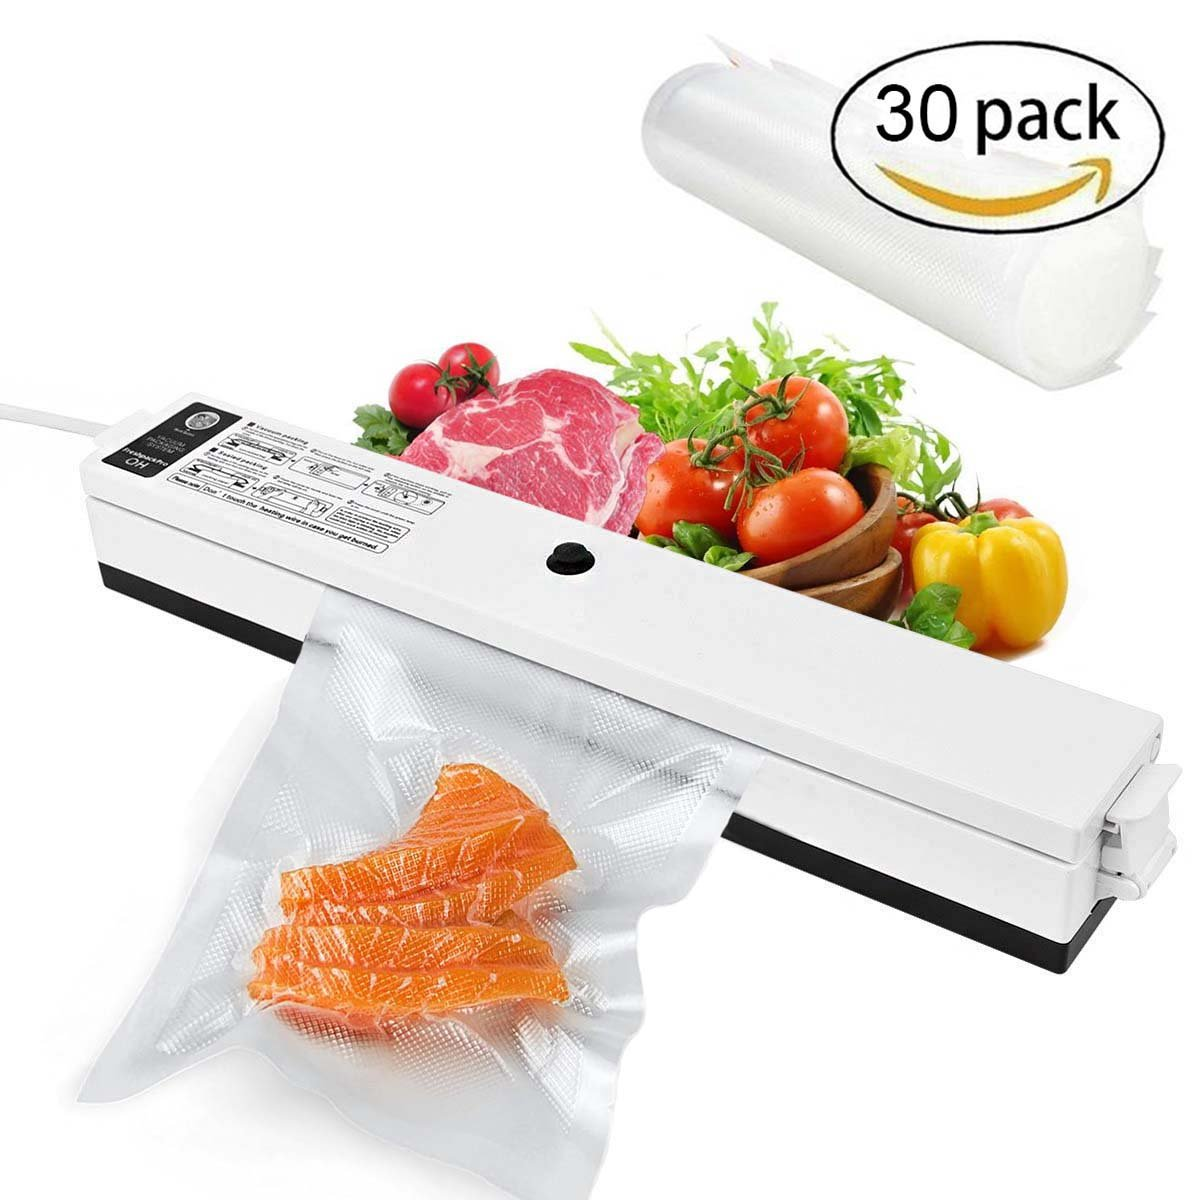 Vacuum Sealer, Rantizon Automatic Vacuum Sealing System with Bags Starter Kit Preserve & Store Food Sealers Compact Design Air Sealing System For Food Preservation Vacuum Packing Machine